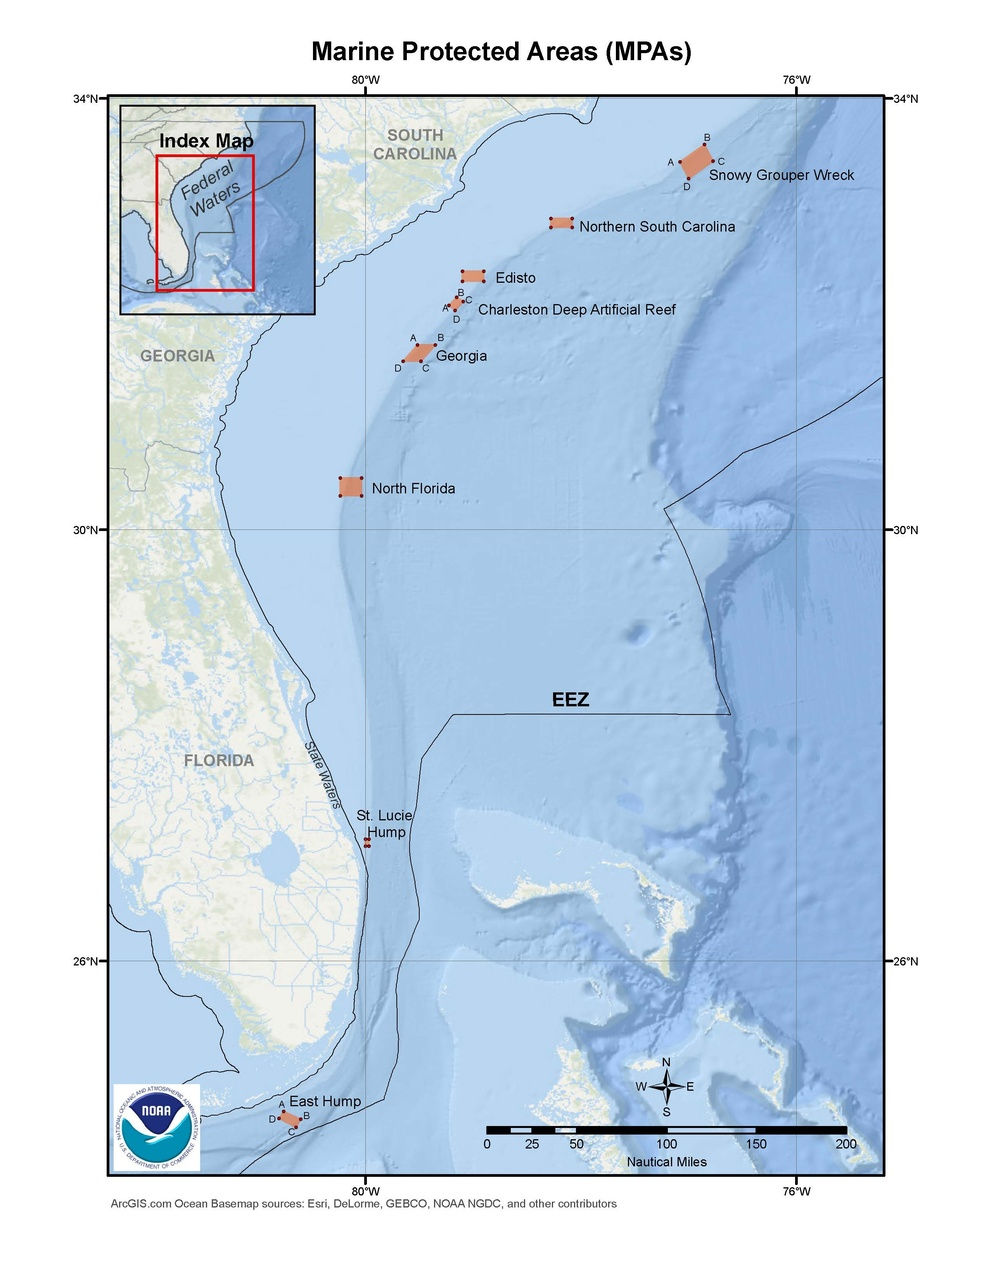 Marine Protected Areas Mpas Fishery Management Areas Map Gis Data Noaa Fisheries